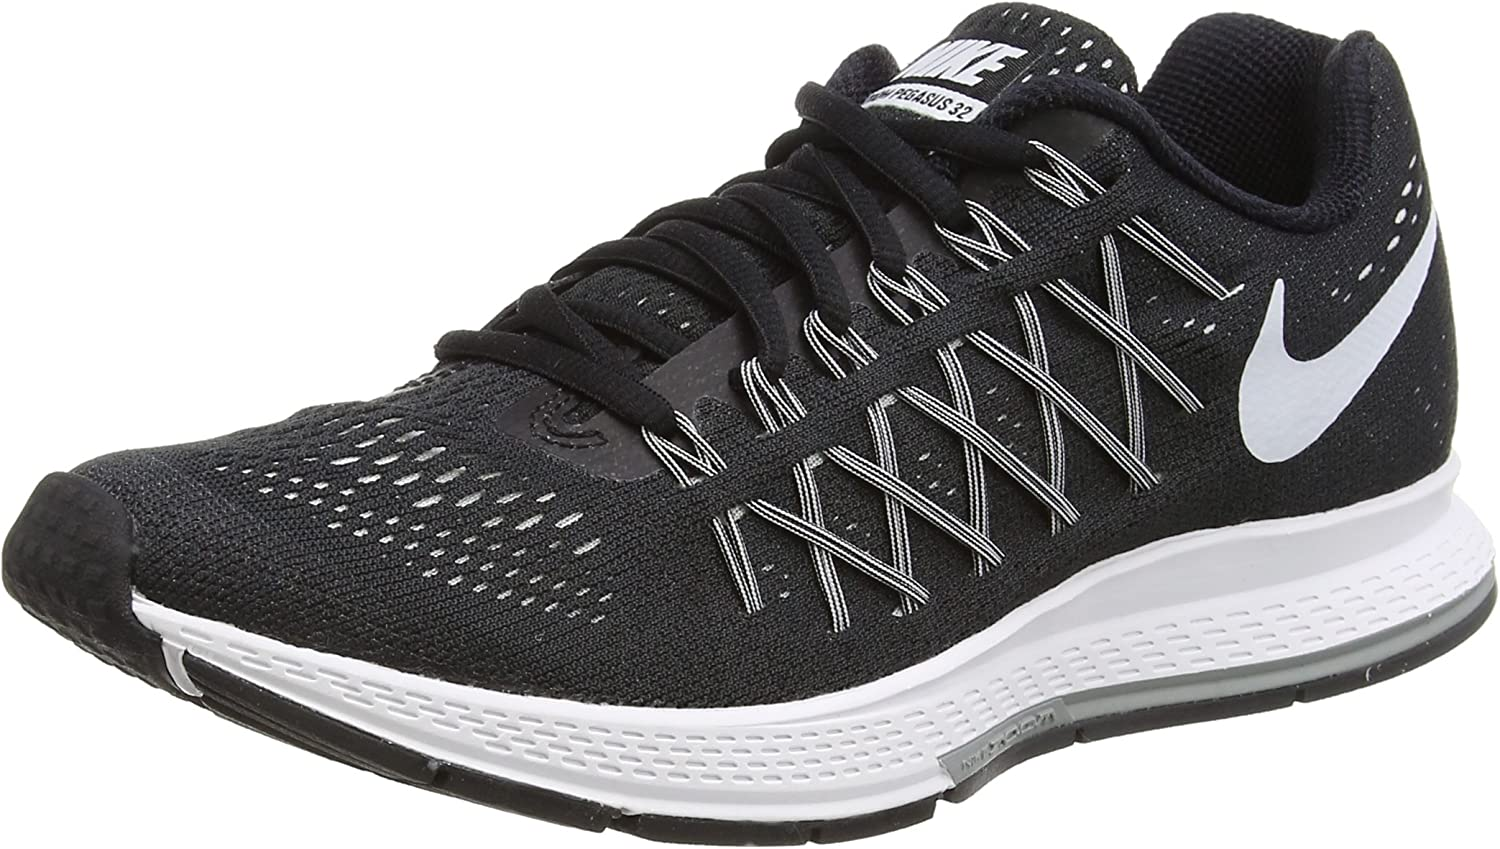 Nike Air Zoom Pegasus 32 - Zapatillas para mujer, Negro (Black / White-Pure Platinum), 38 EU: Amazon.es: Zapatos y complementos